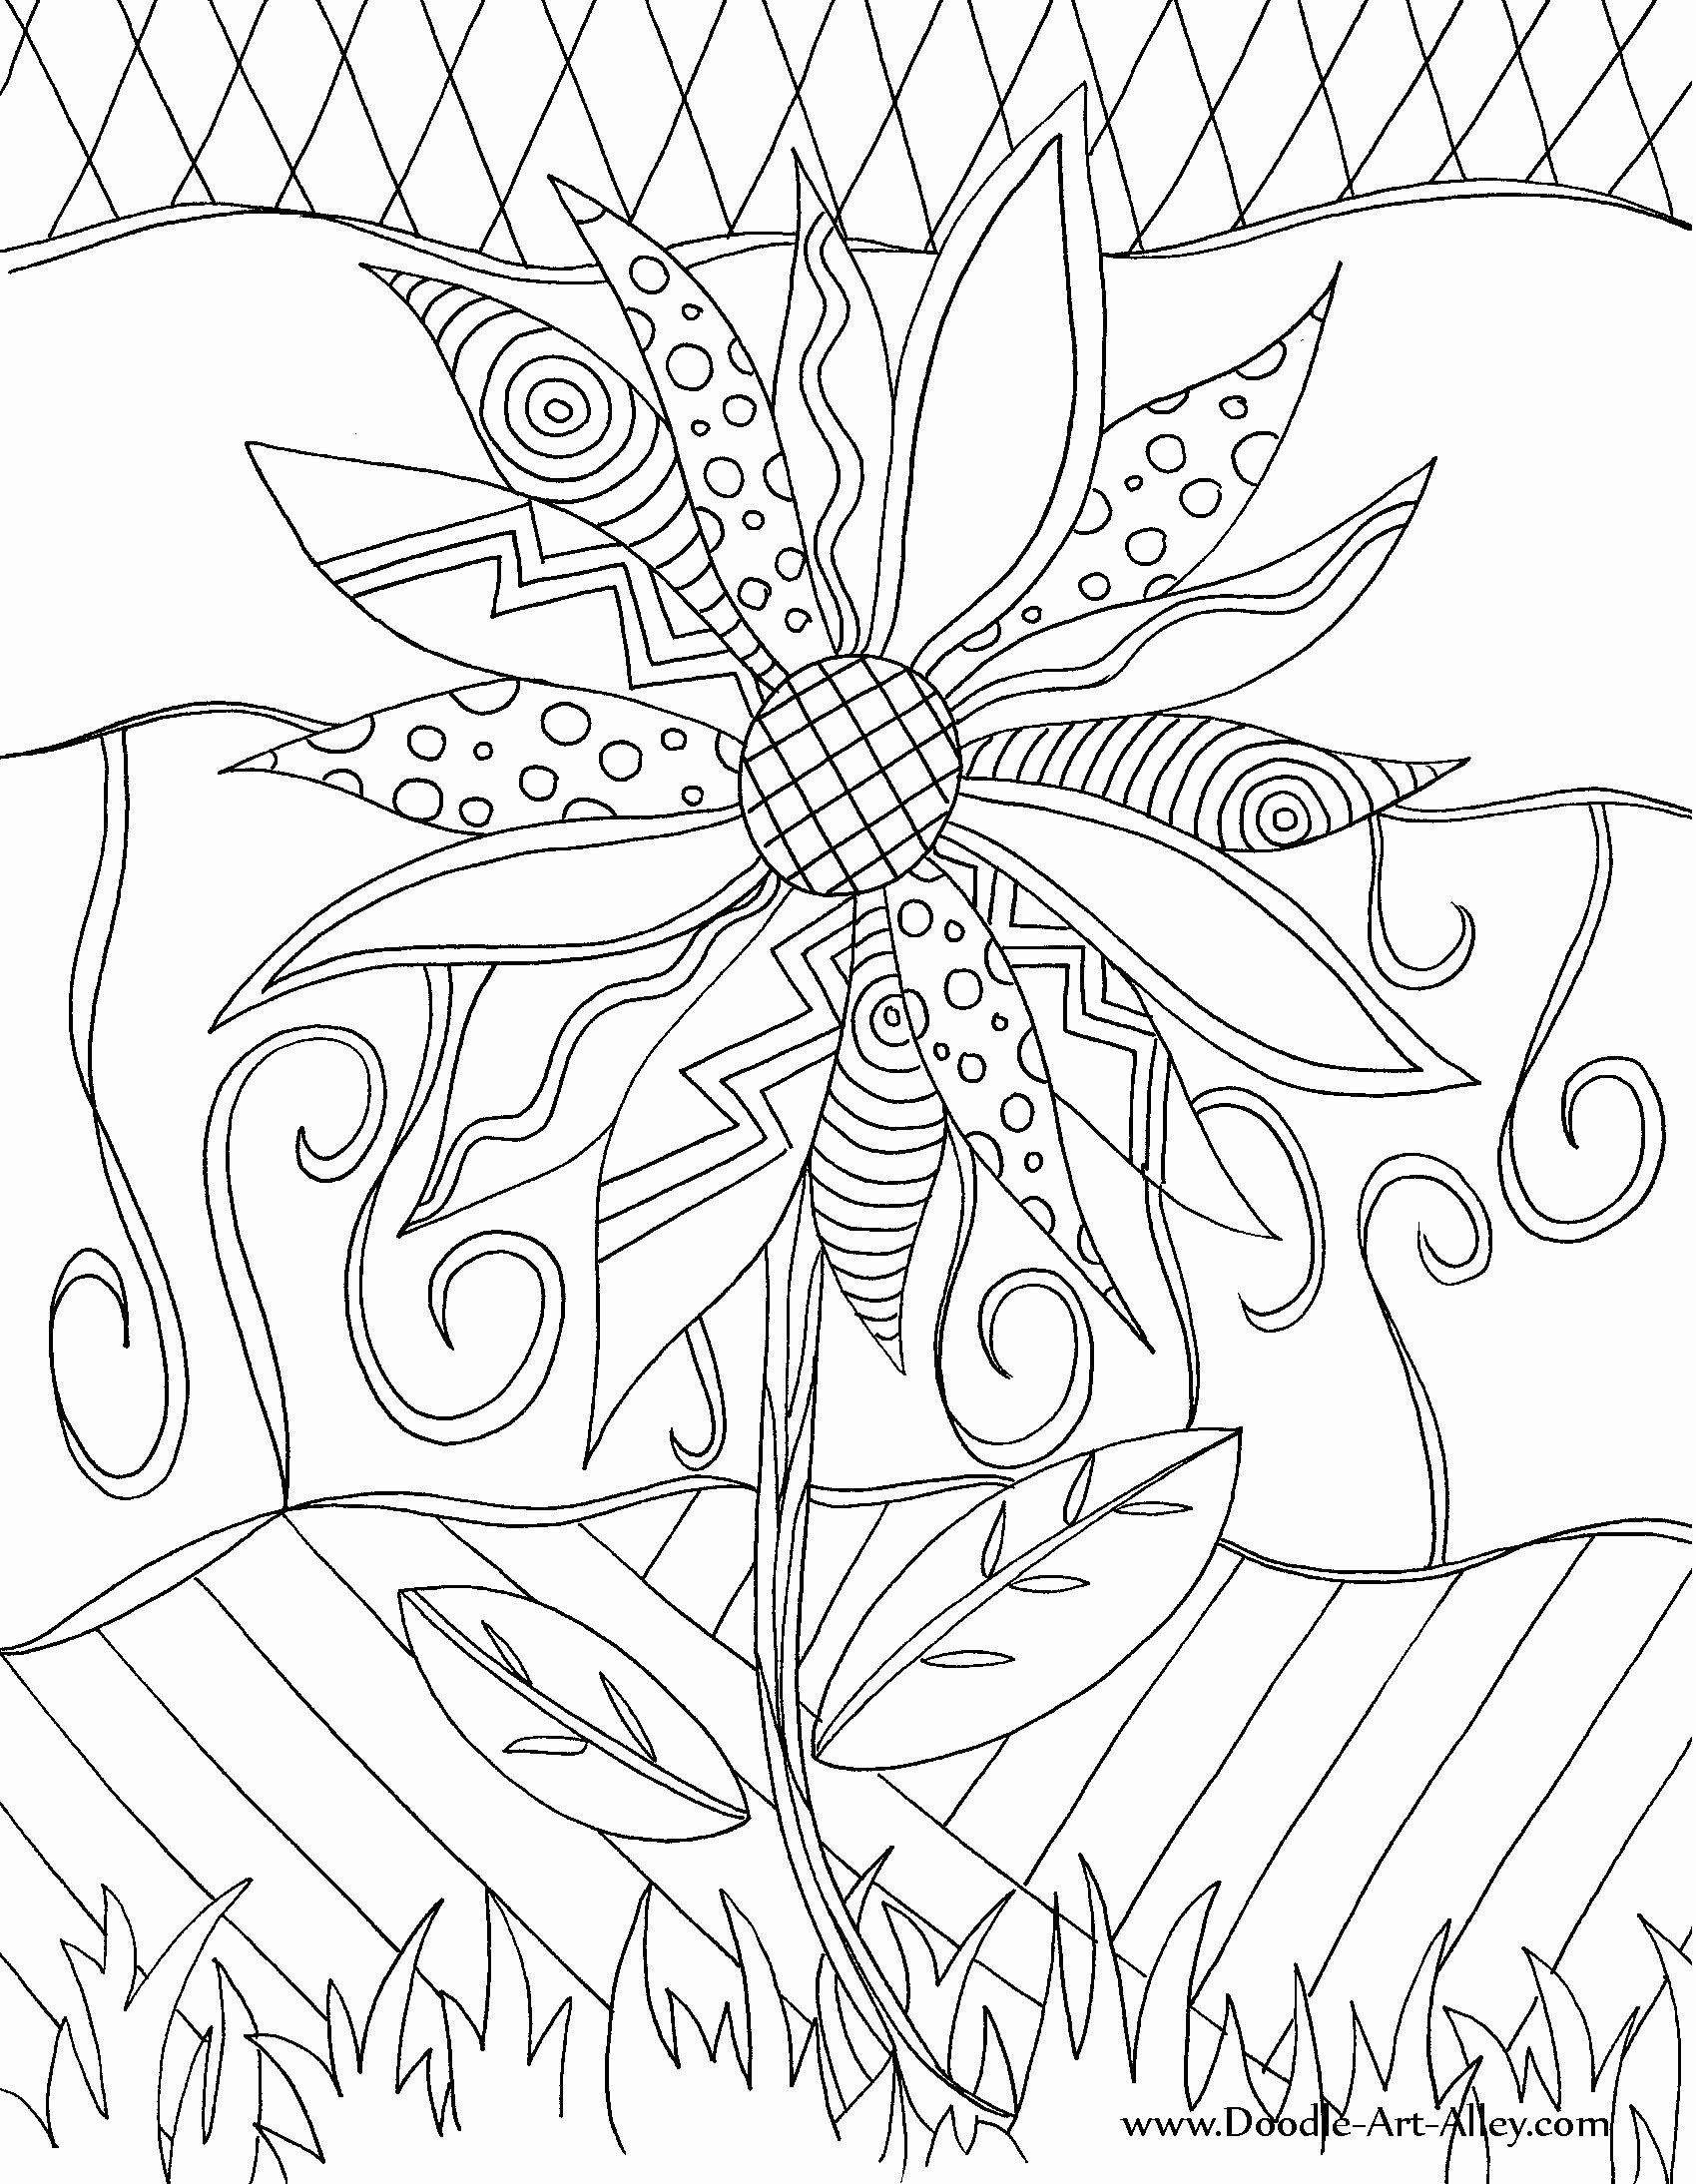 Summer Break Coloring Pages In